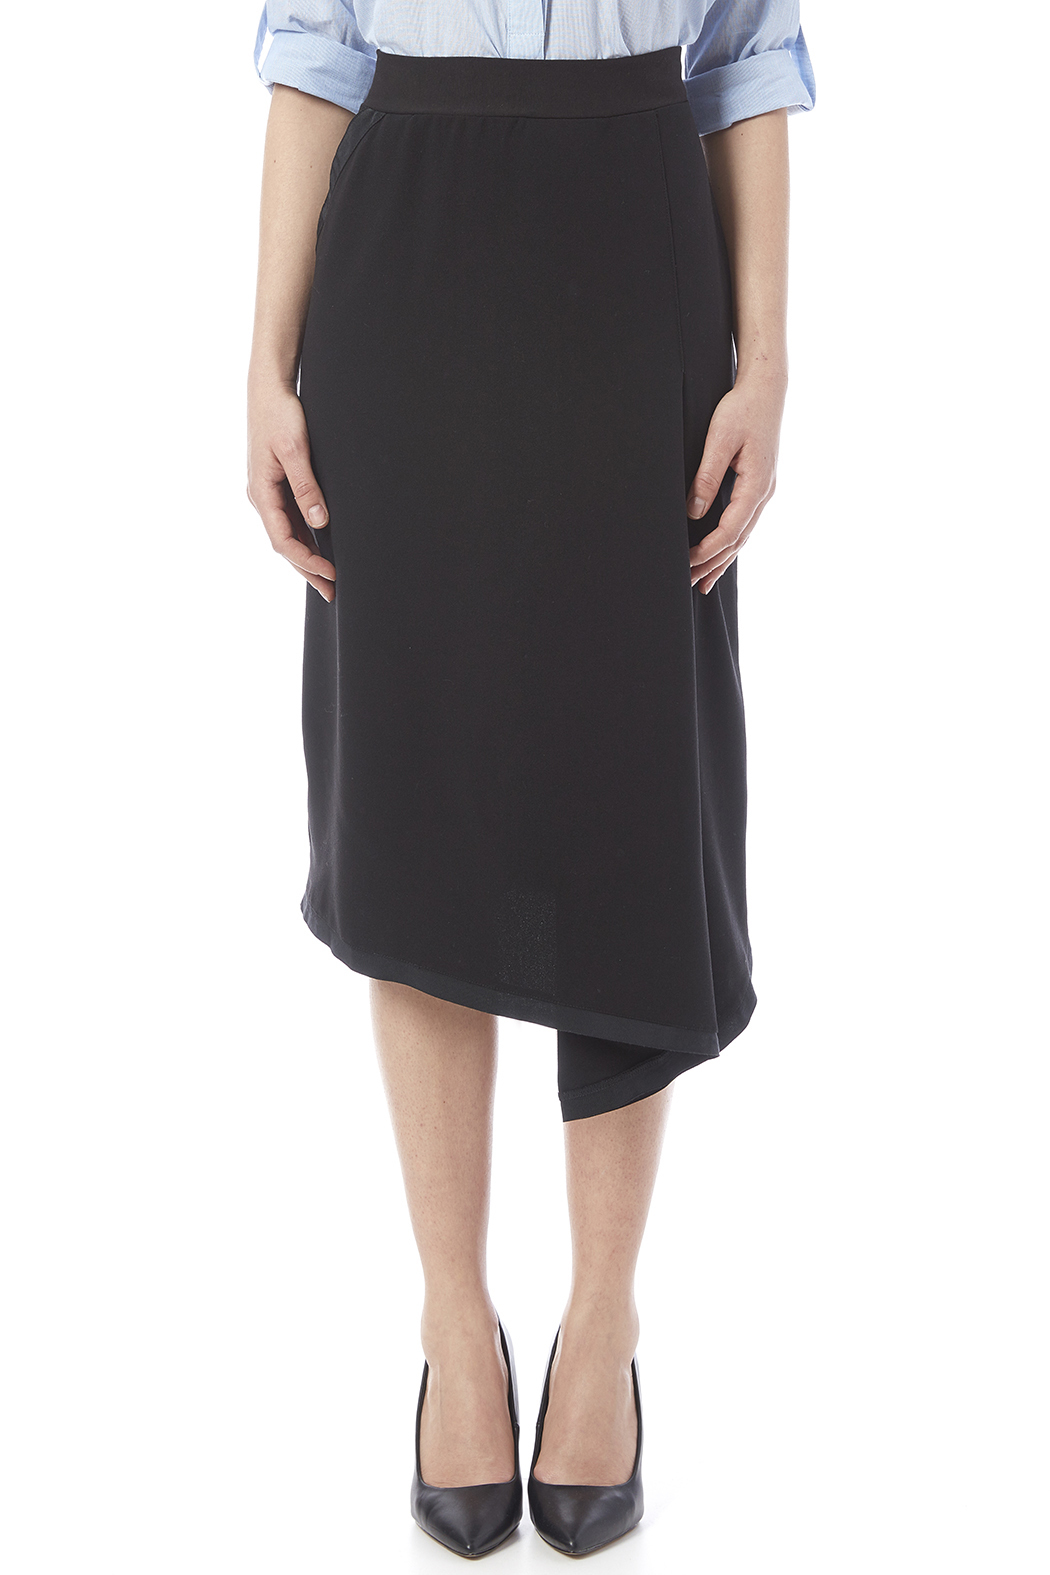 Neesh by D.A.R. Asymmetrical Midi Skirt - Side Cropped Image